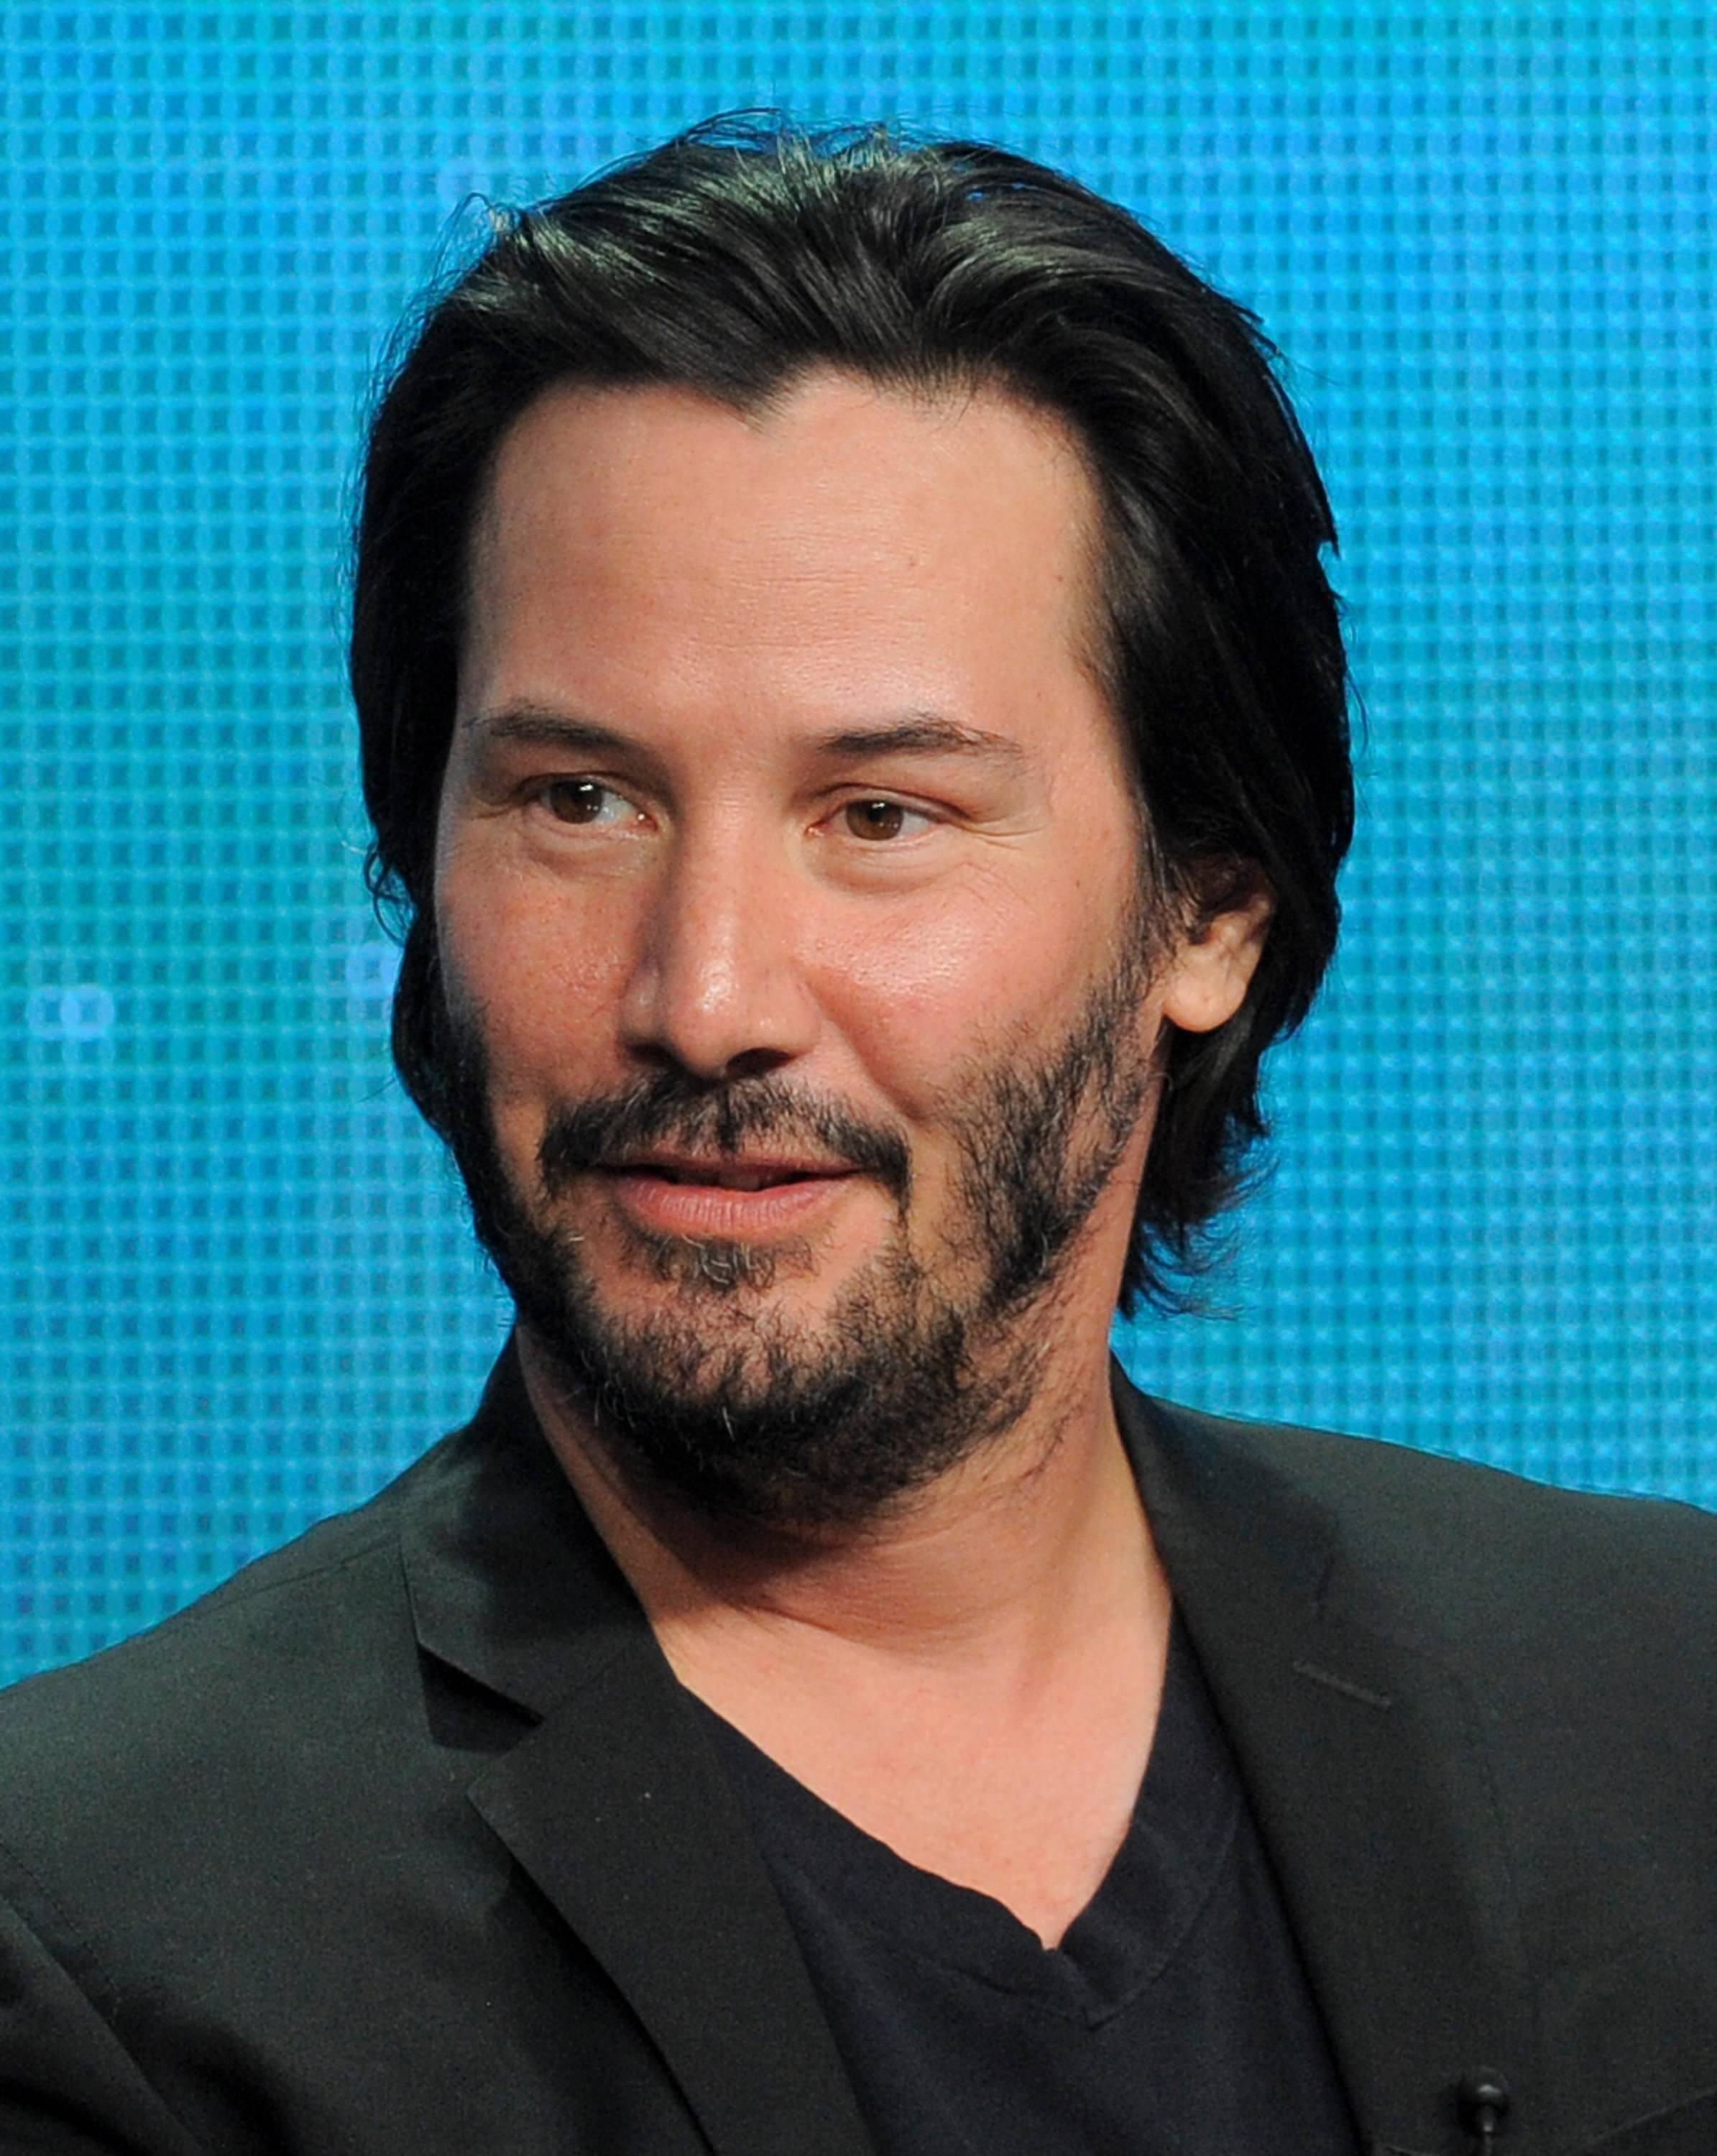 Keanu Reeves will build a $78,000 motorcycle just for you